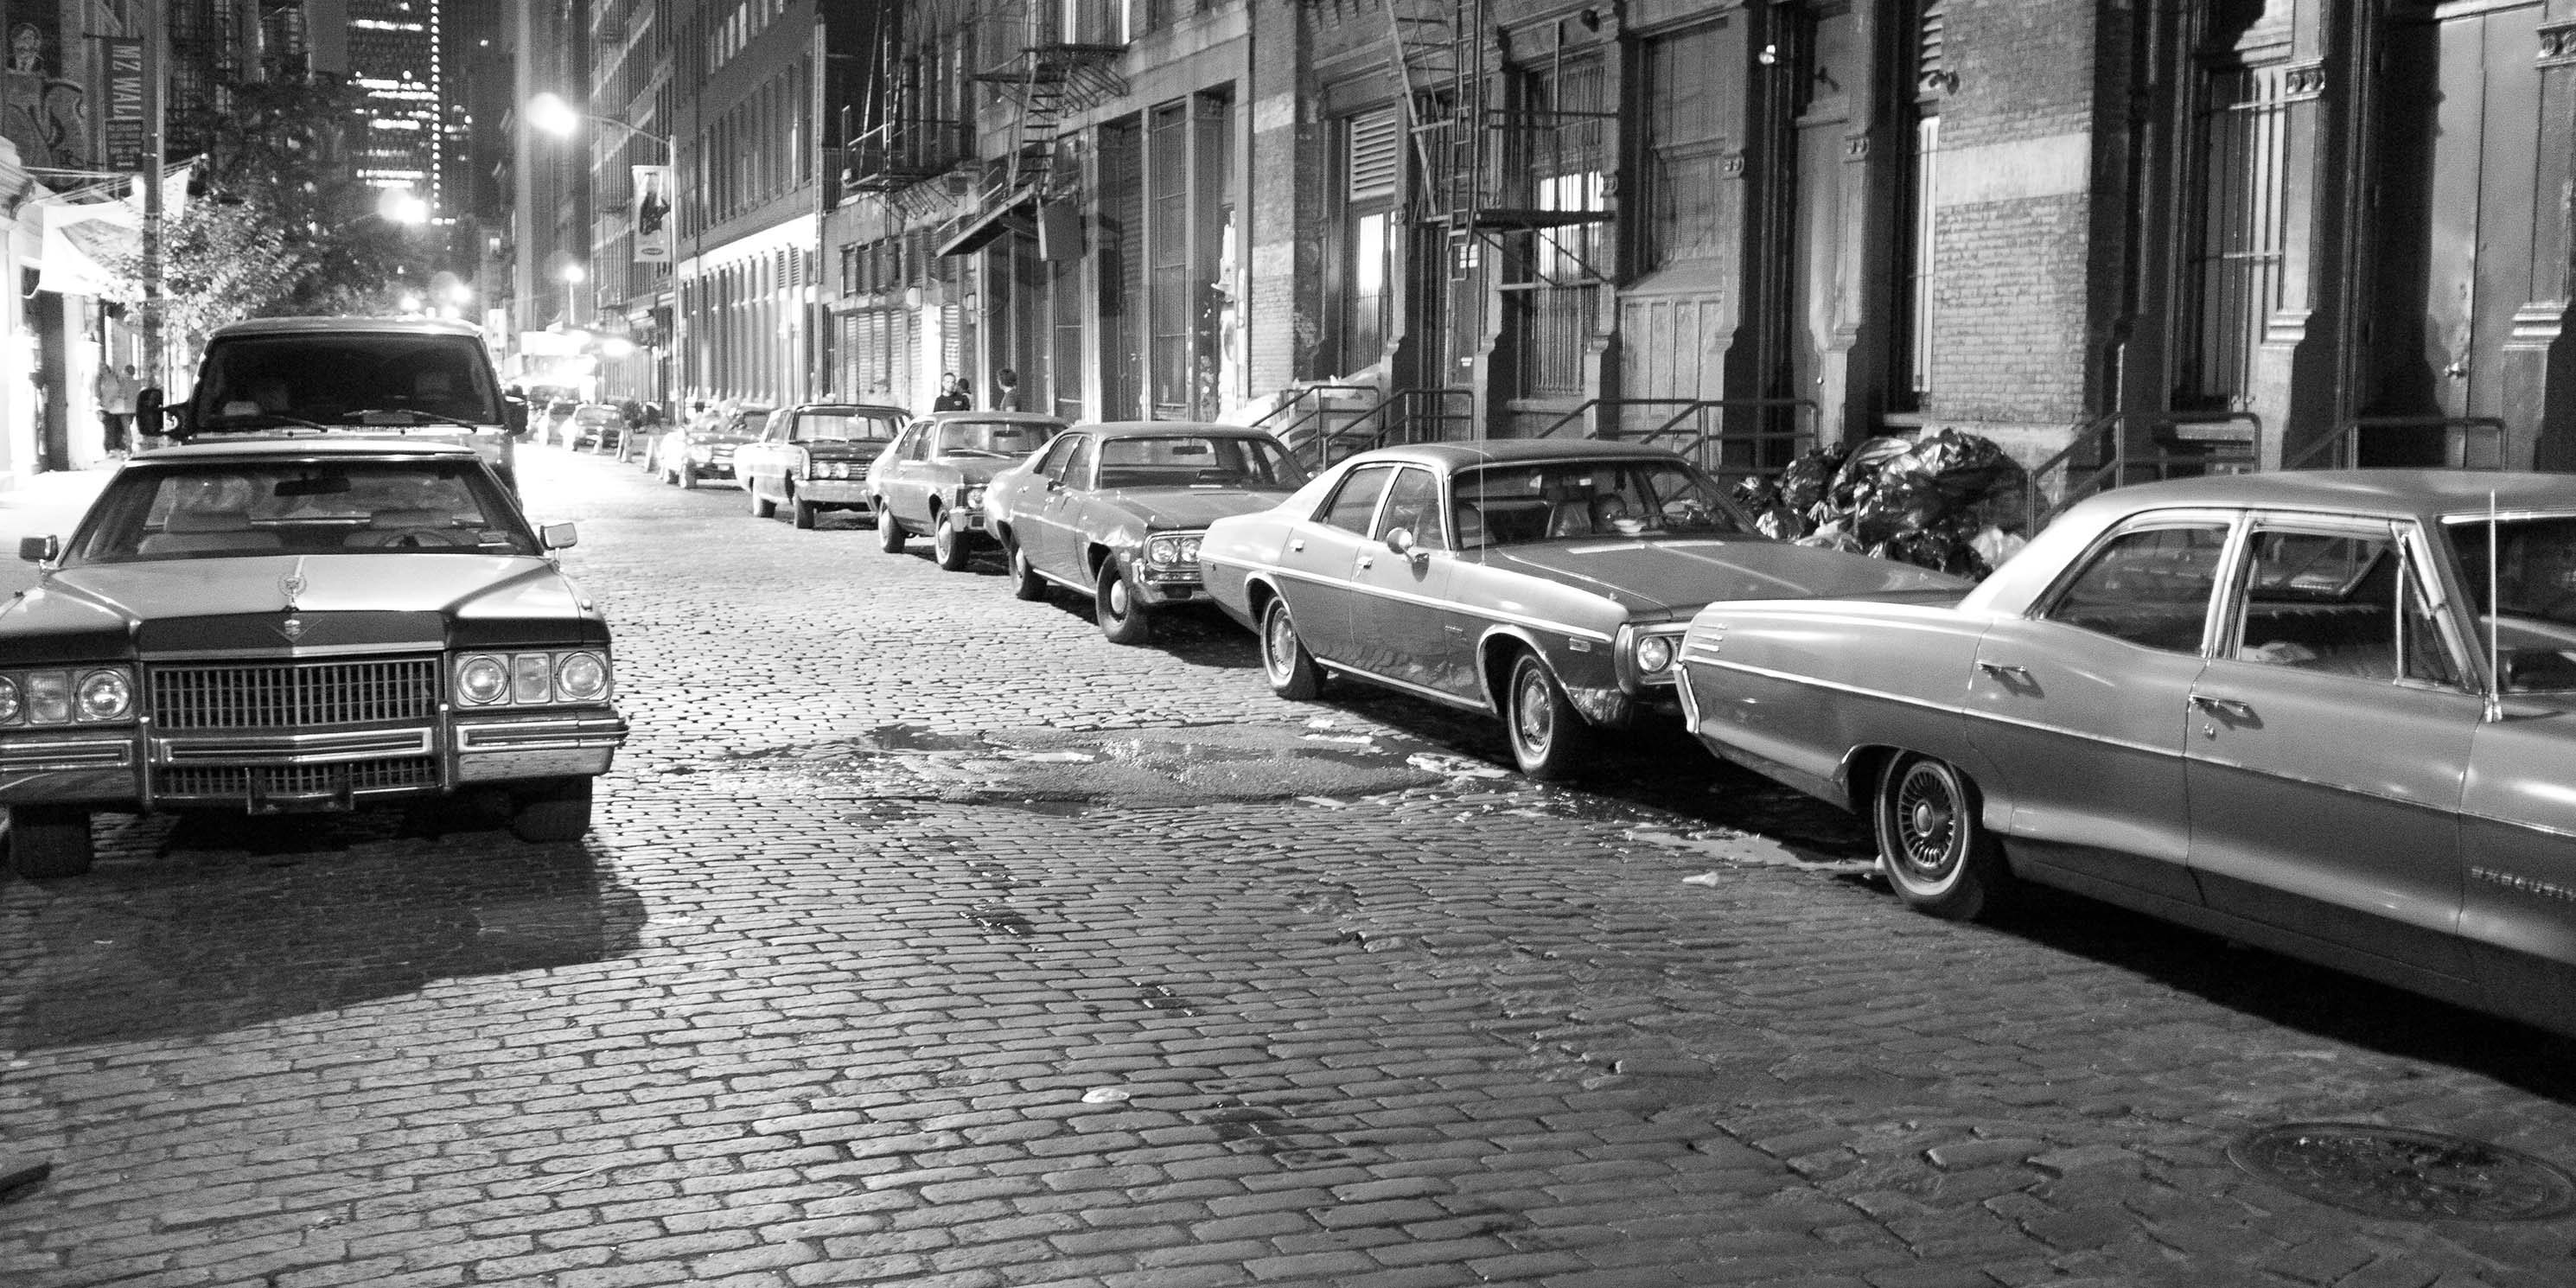 SoHo street at night, lined with cars from 1970's, part of a movie shoot